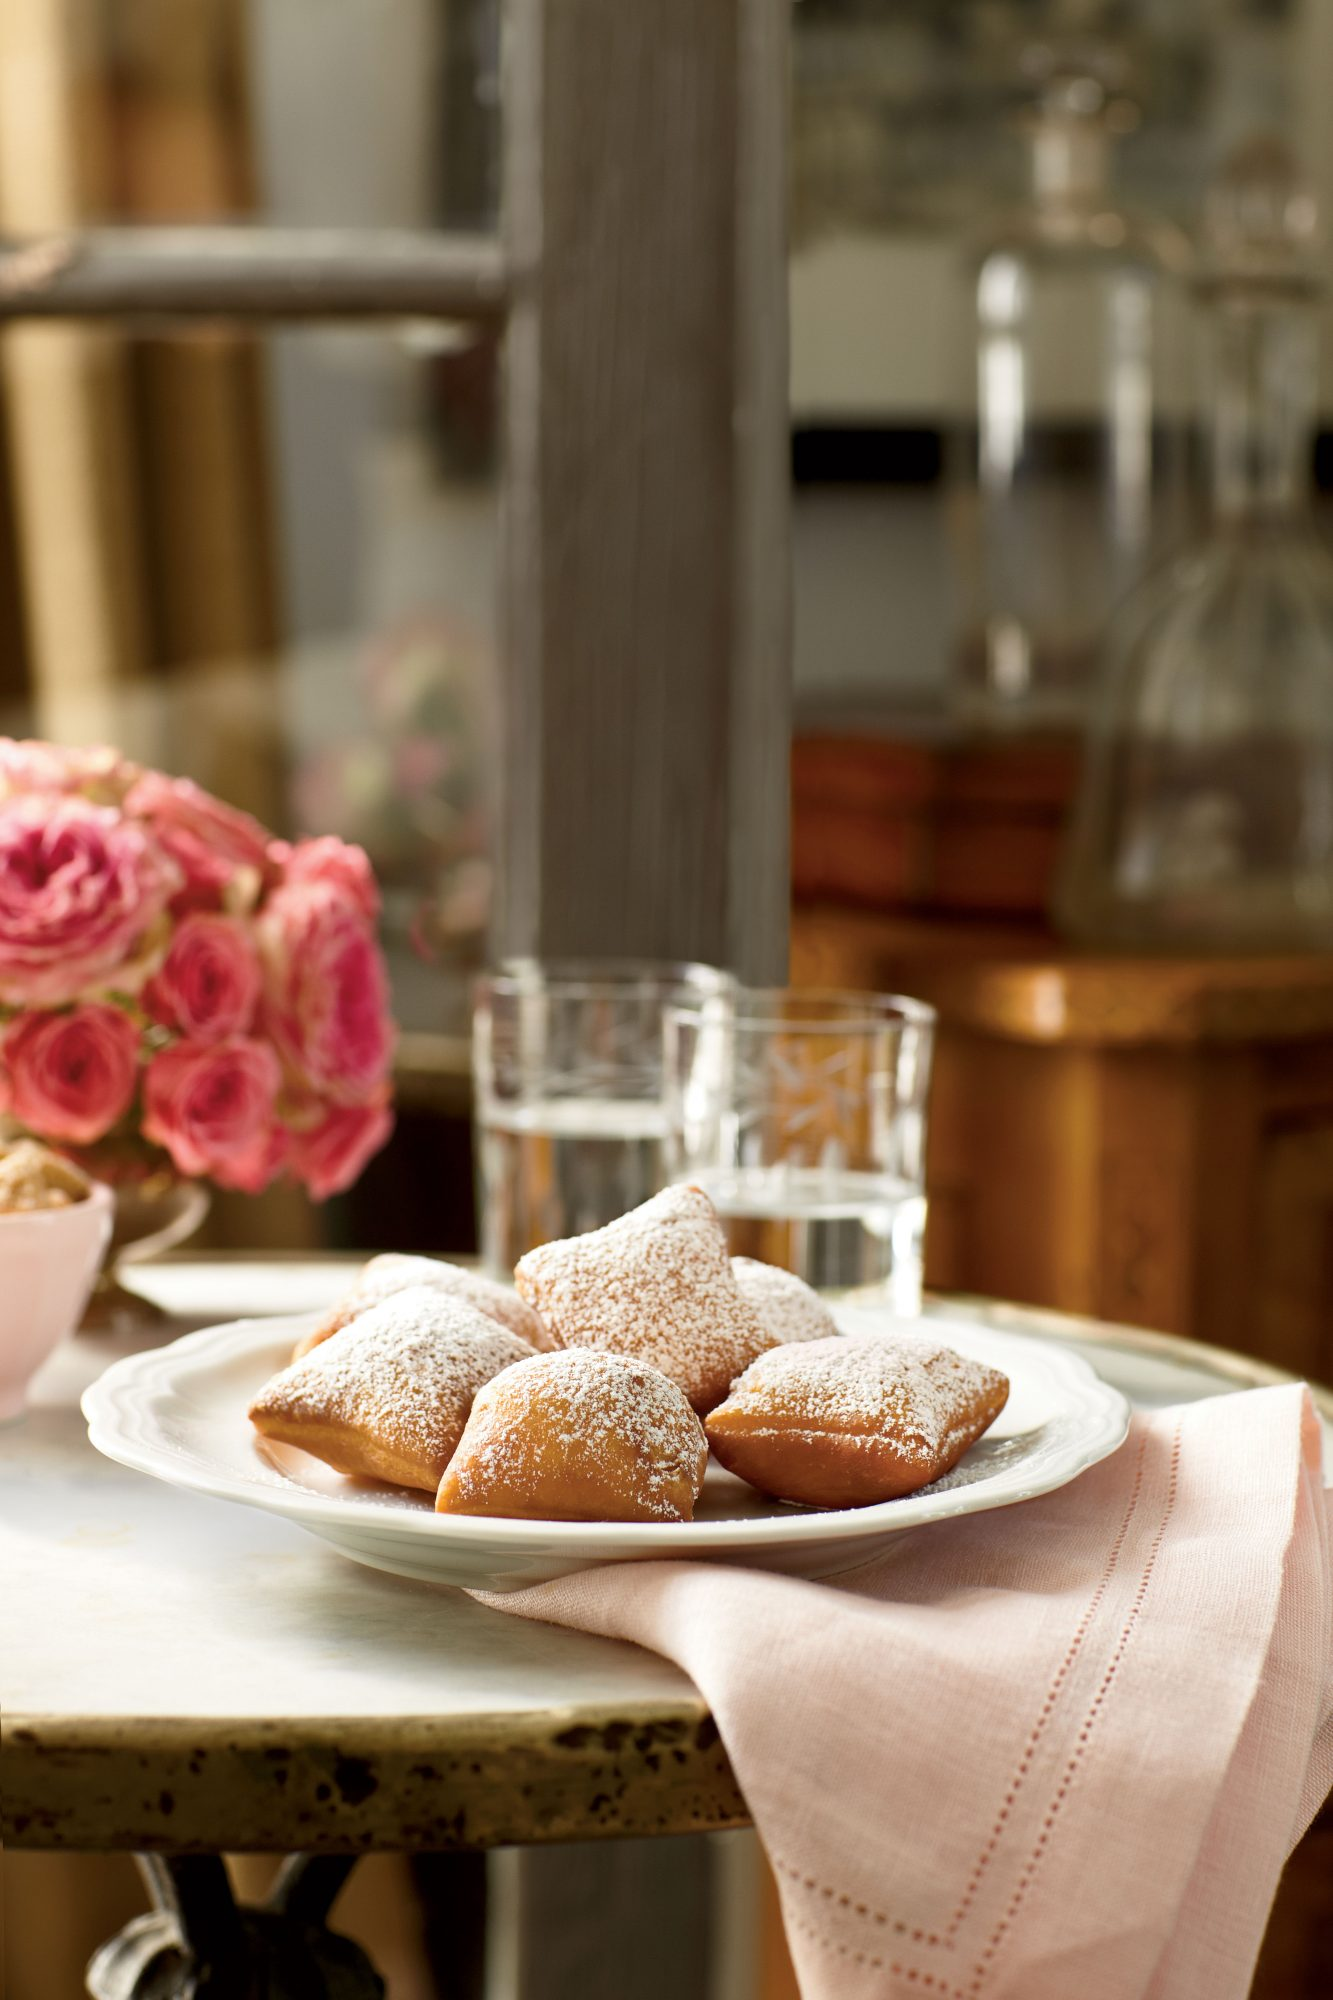 Make Your Own New Orleans Beignets